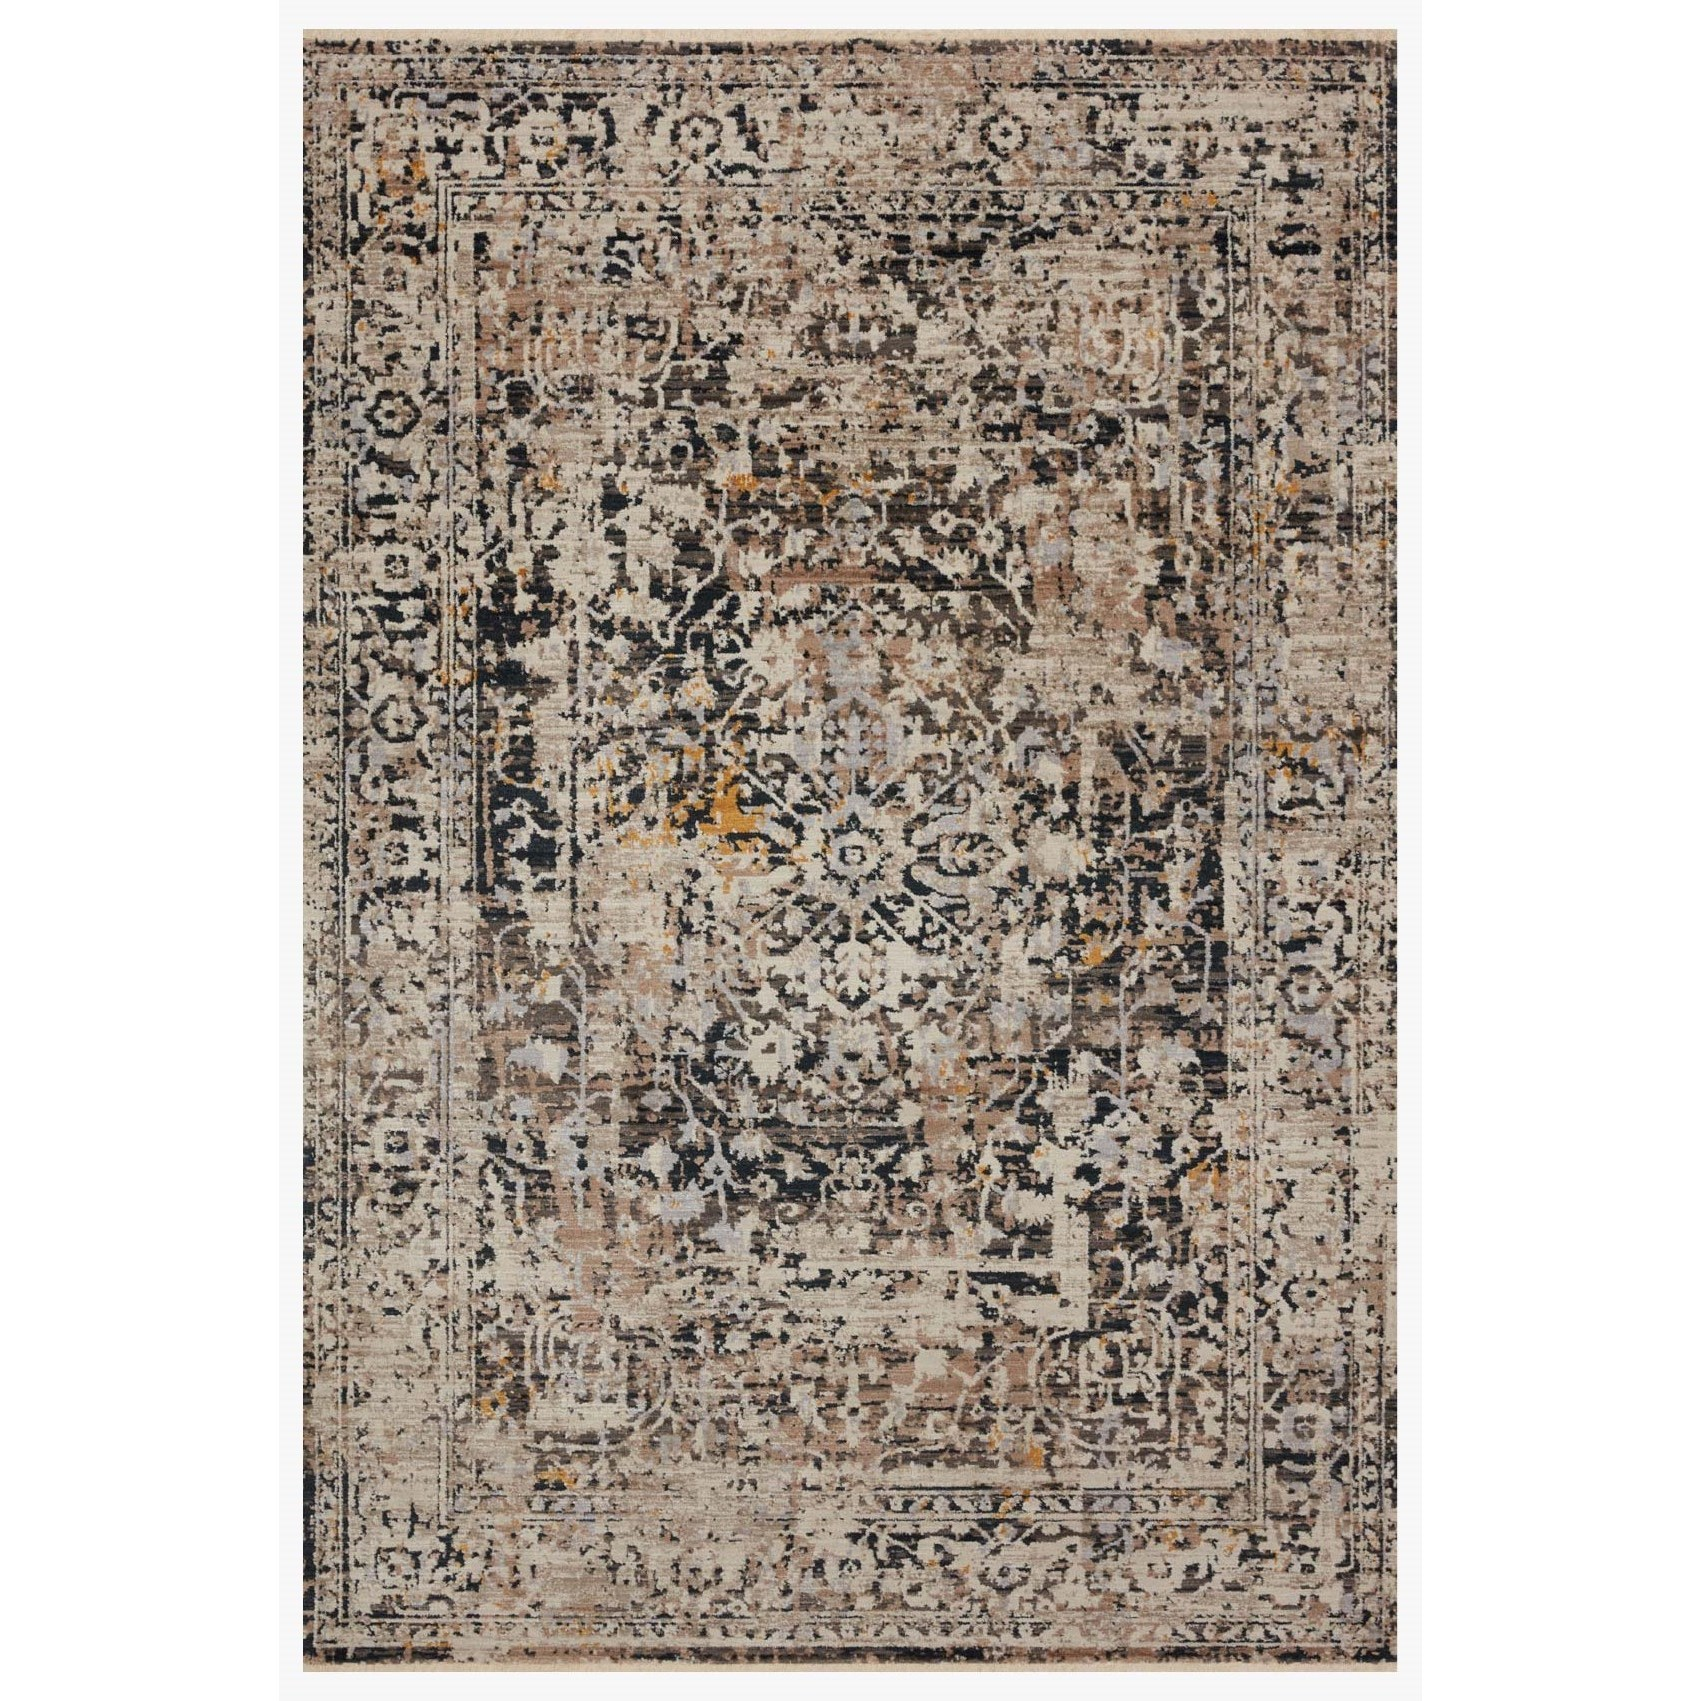 """Leigh 6'7"""" x 9'6"""" Charcoal / Taupe Rug by Loloi Rugs at Sprintz Furniture"""